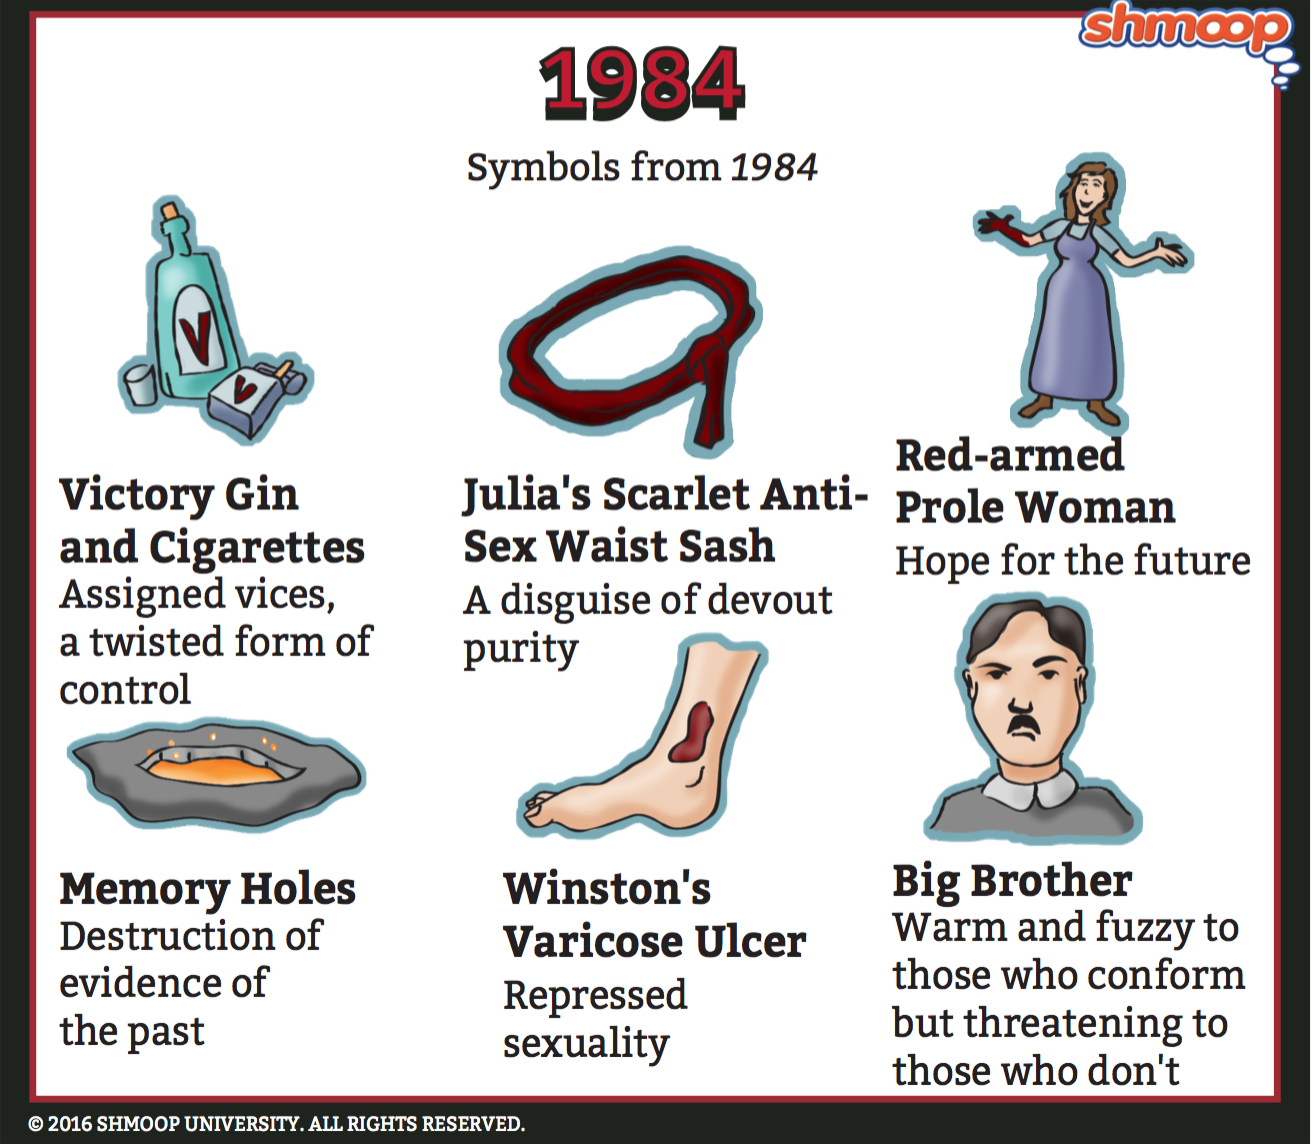 orwells use of symbolism in 1984 essay George orwell's classic novel 1984 is a perfect example of a futuristic 1984 essay by lauren orwell creates a symbolism between the separate.